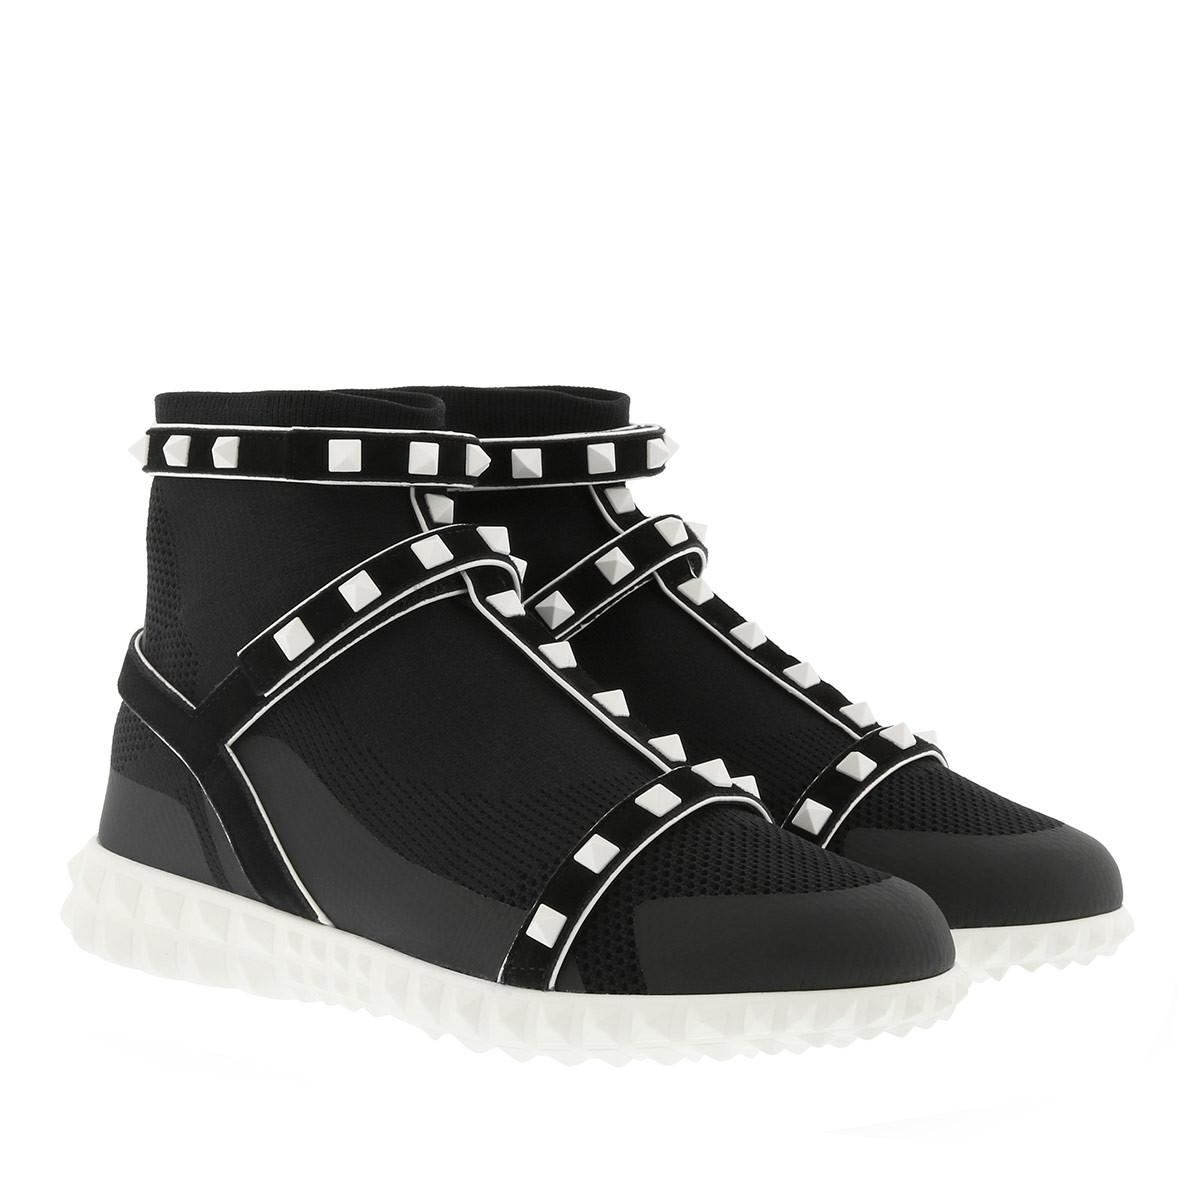 Rockstud Bodytech Hightop Sneakers in Black Nylon Valentino Genuine Online 100% Original Marketable For Sale Geniue Stockist Cheap Online f1rbsvicR